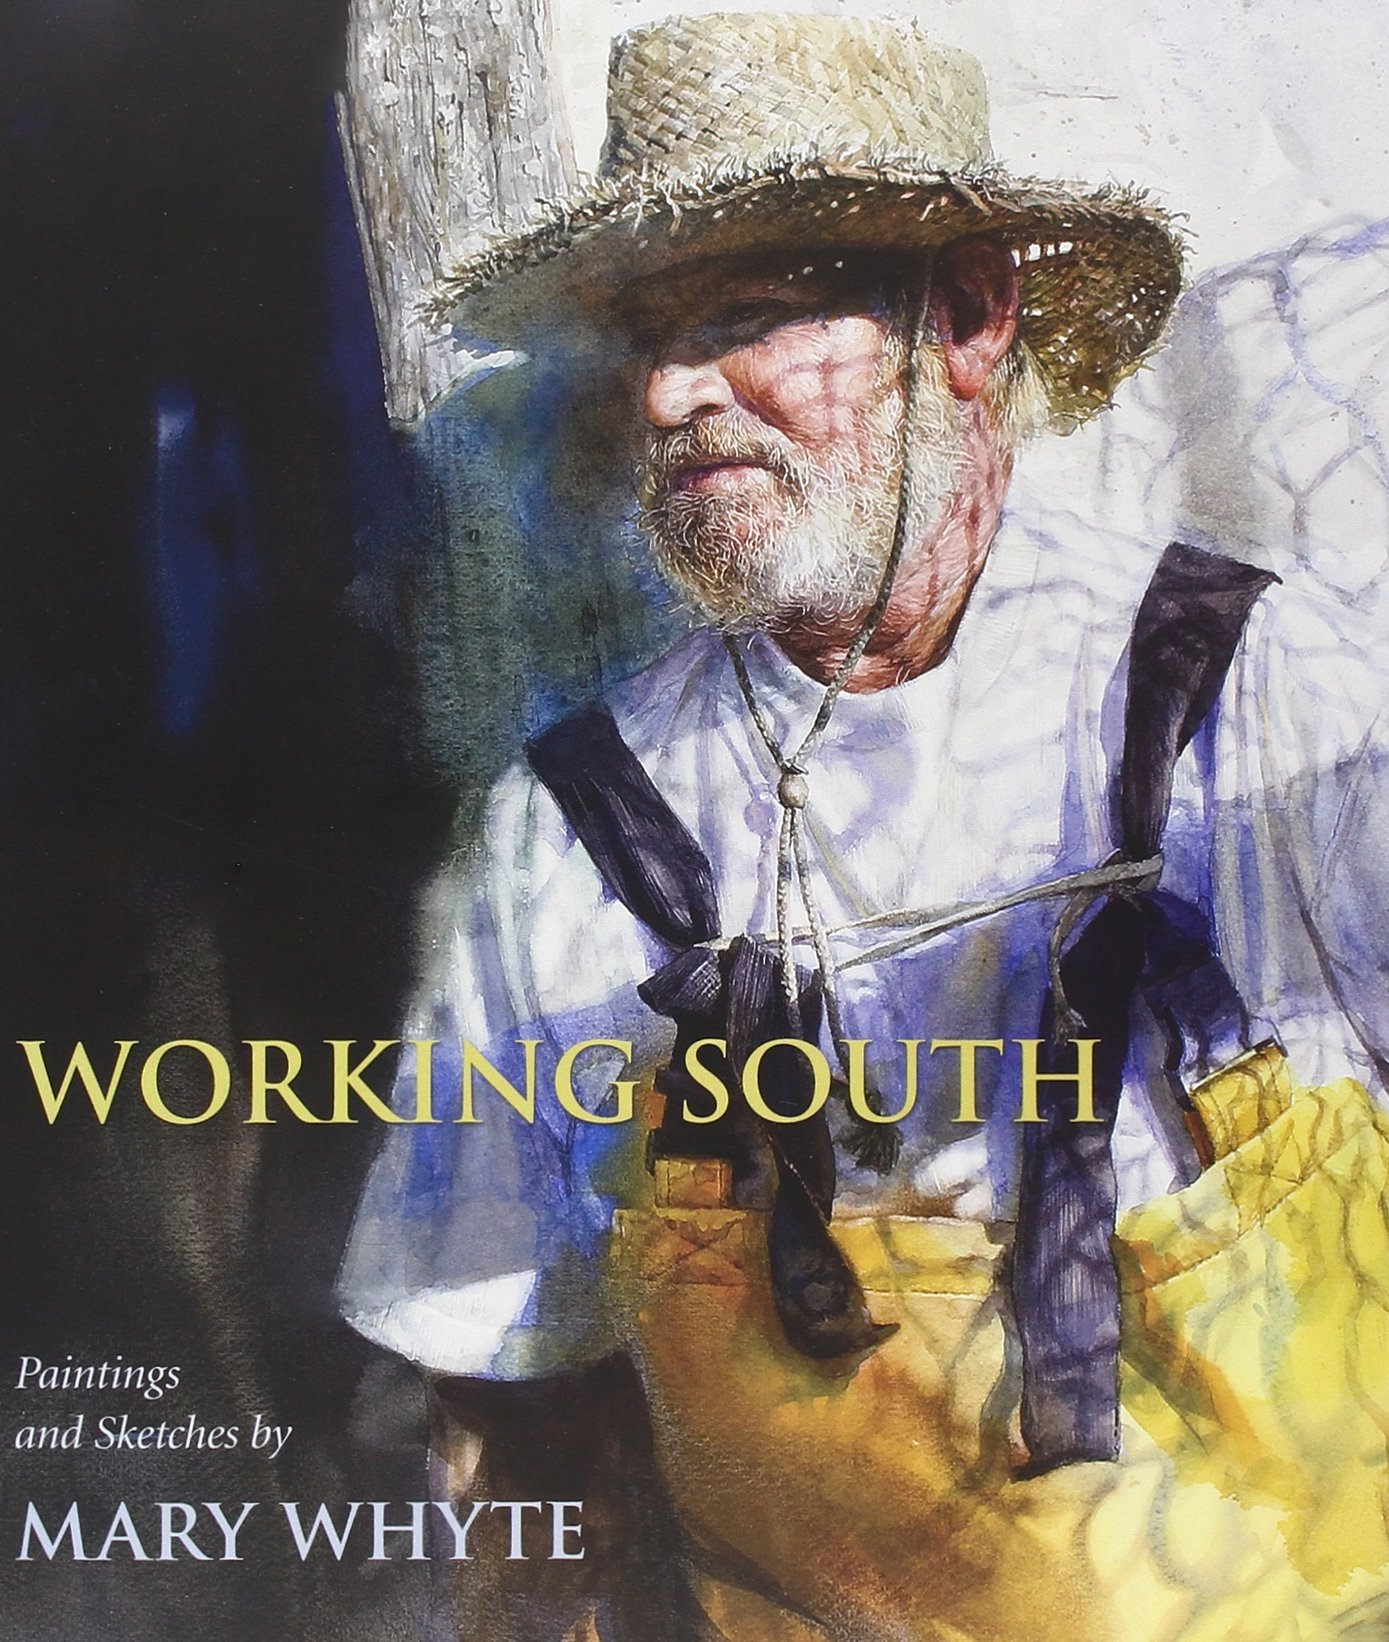 Watercolor books by mary whyte - Working South Paintings And Sketches By Mary Whyte Mary Whyte Martha Severens 9781570039676 Amazon Com Books